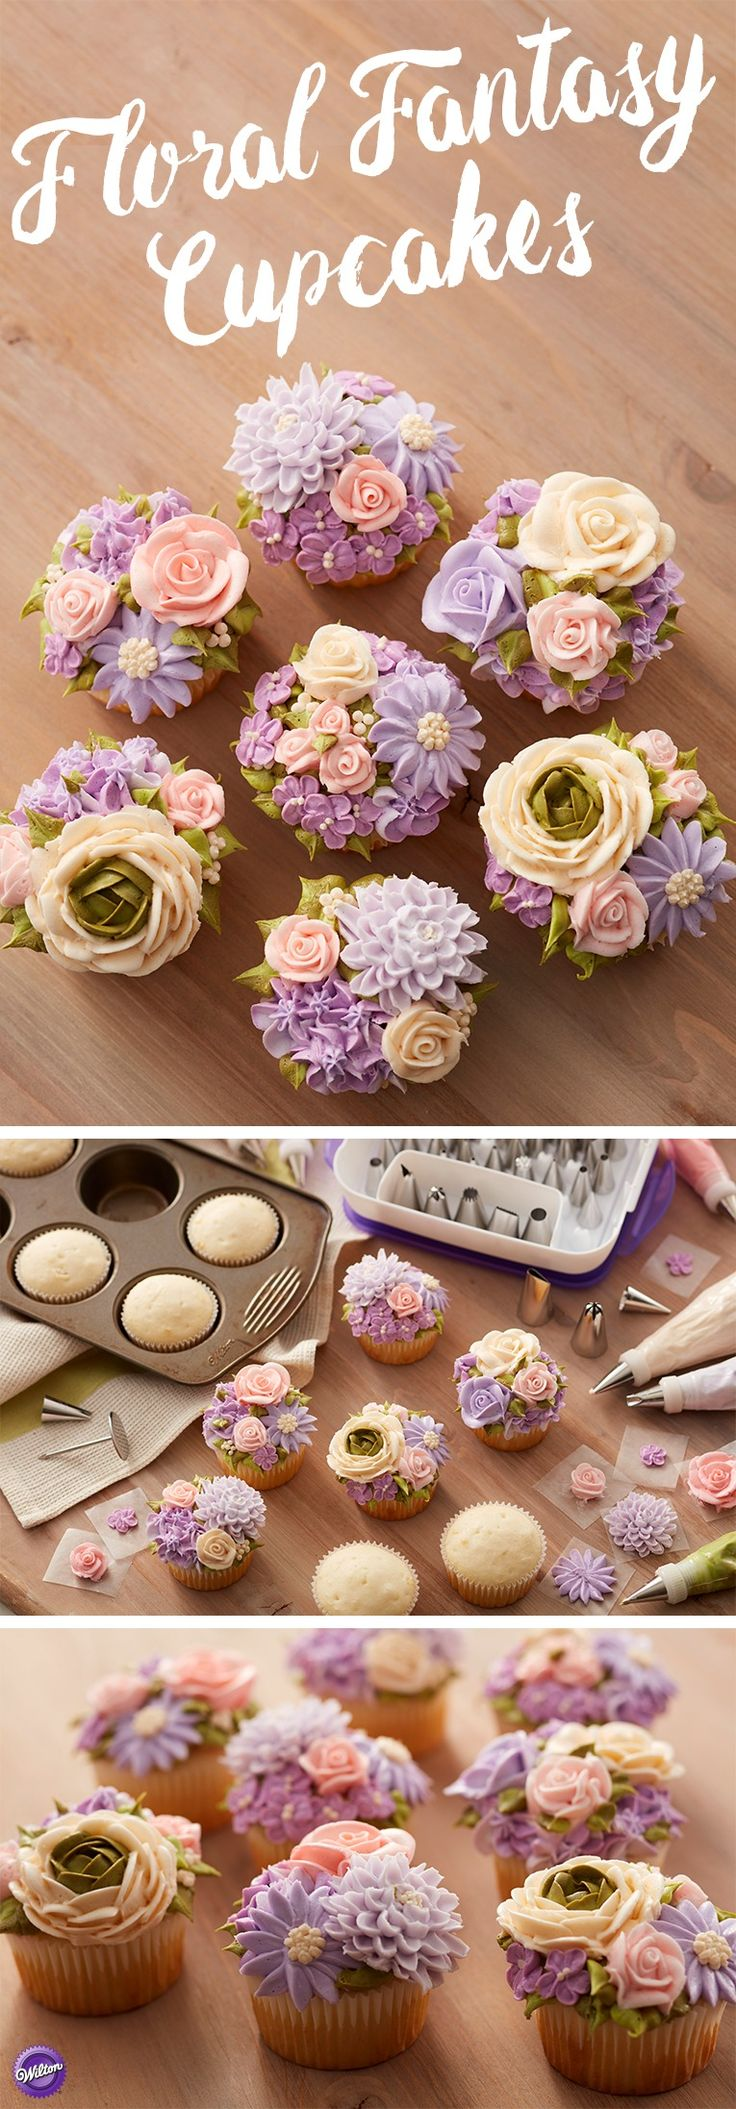 These amazing Floral Fantasy Mother's Day Cupcakes look like they're straight out of the garden! Blooming with stunning buttercream roses, daisies, mums and more, these Mother's Day treats are sure to